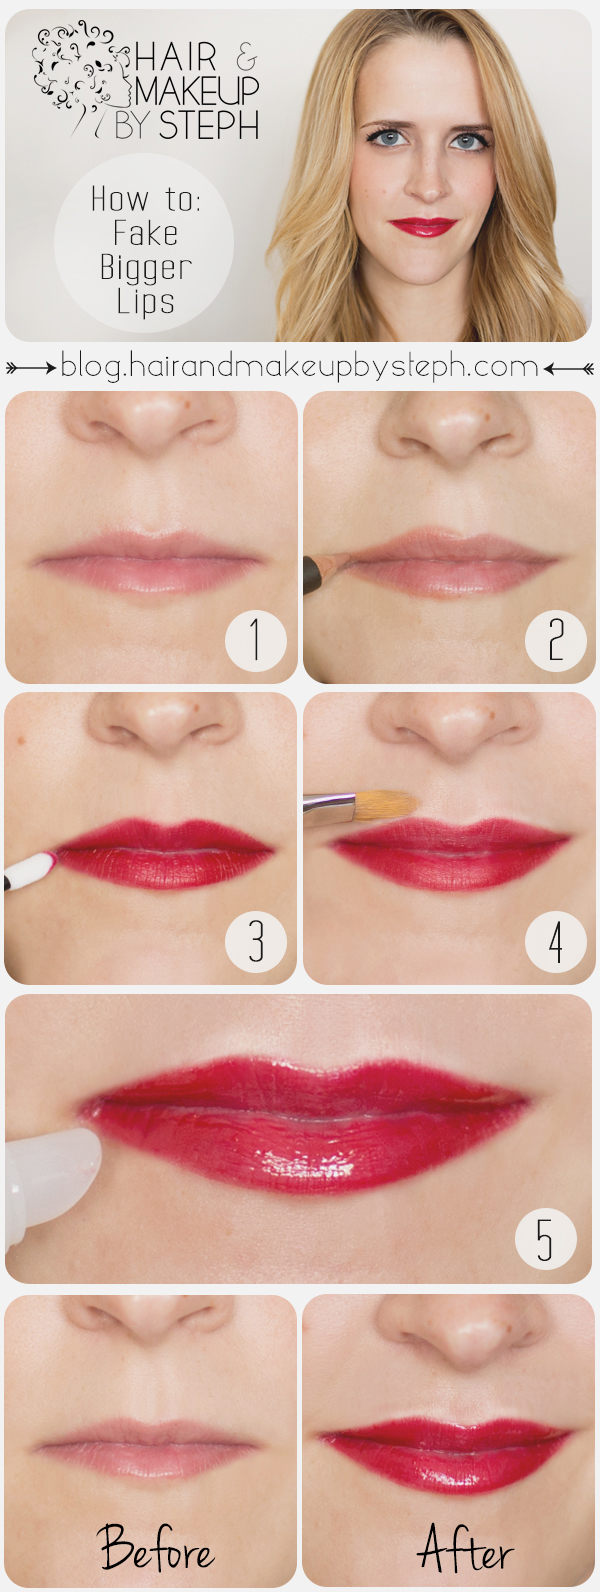 Useful Makeup Tutorials for Sophisticated Looks: Radiant Lip